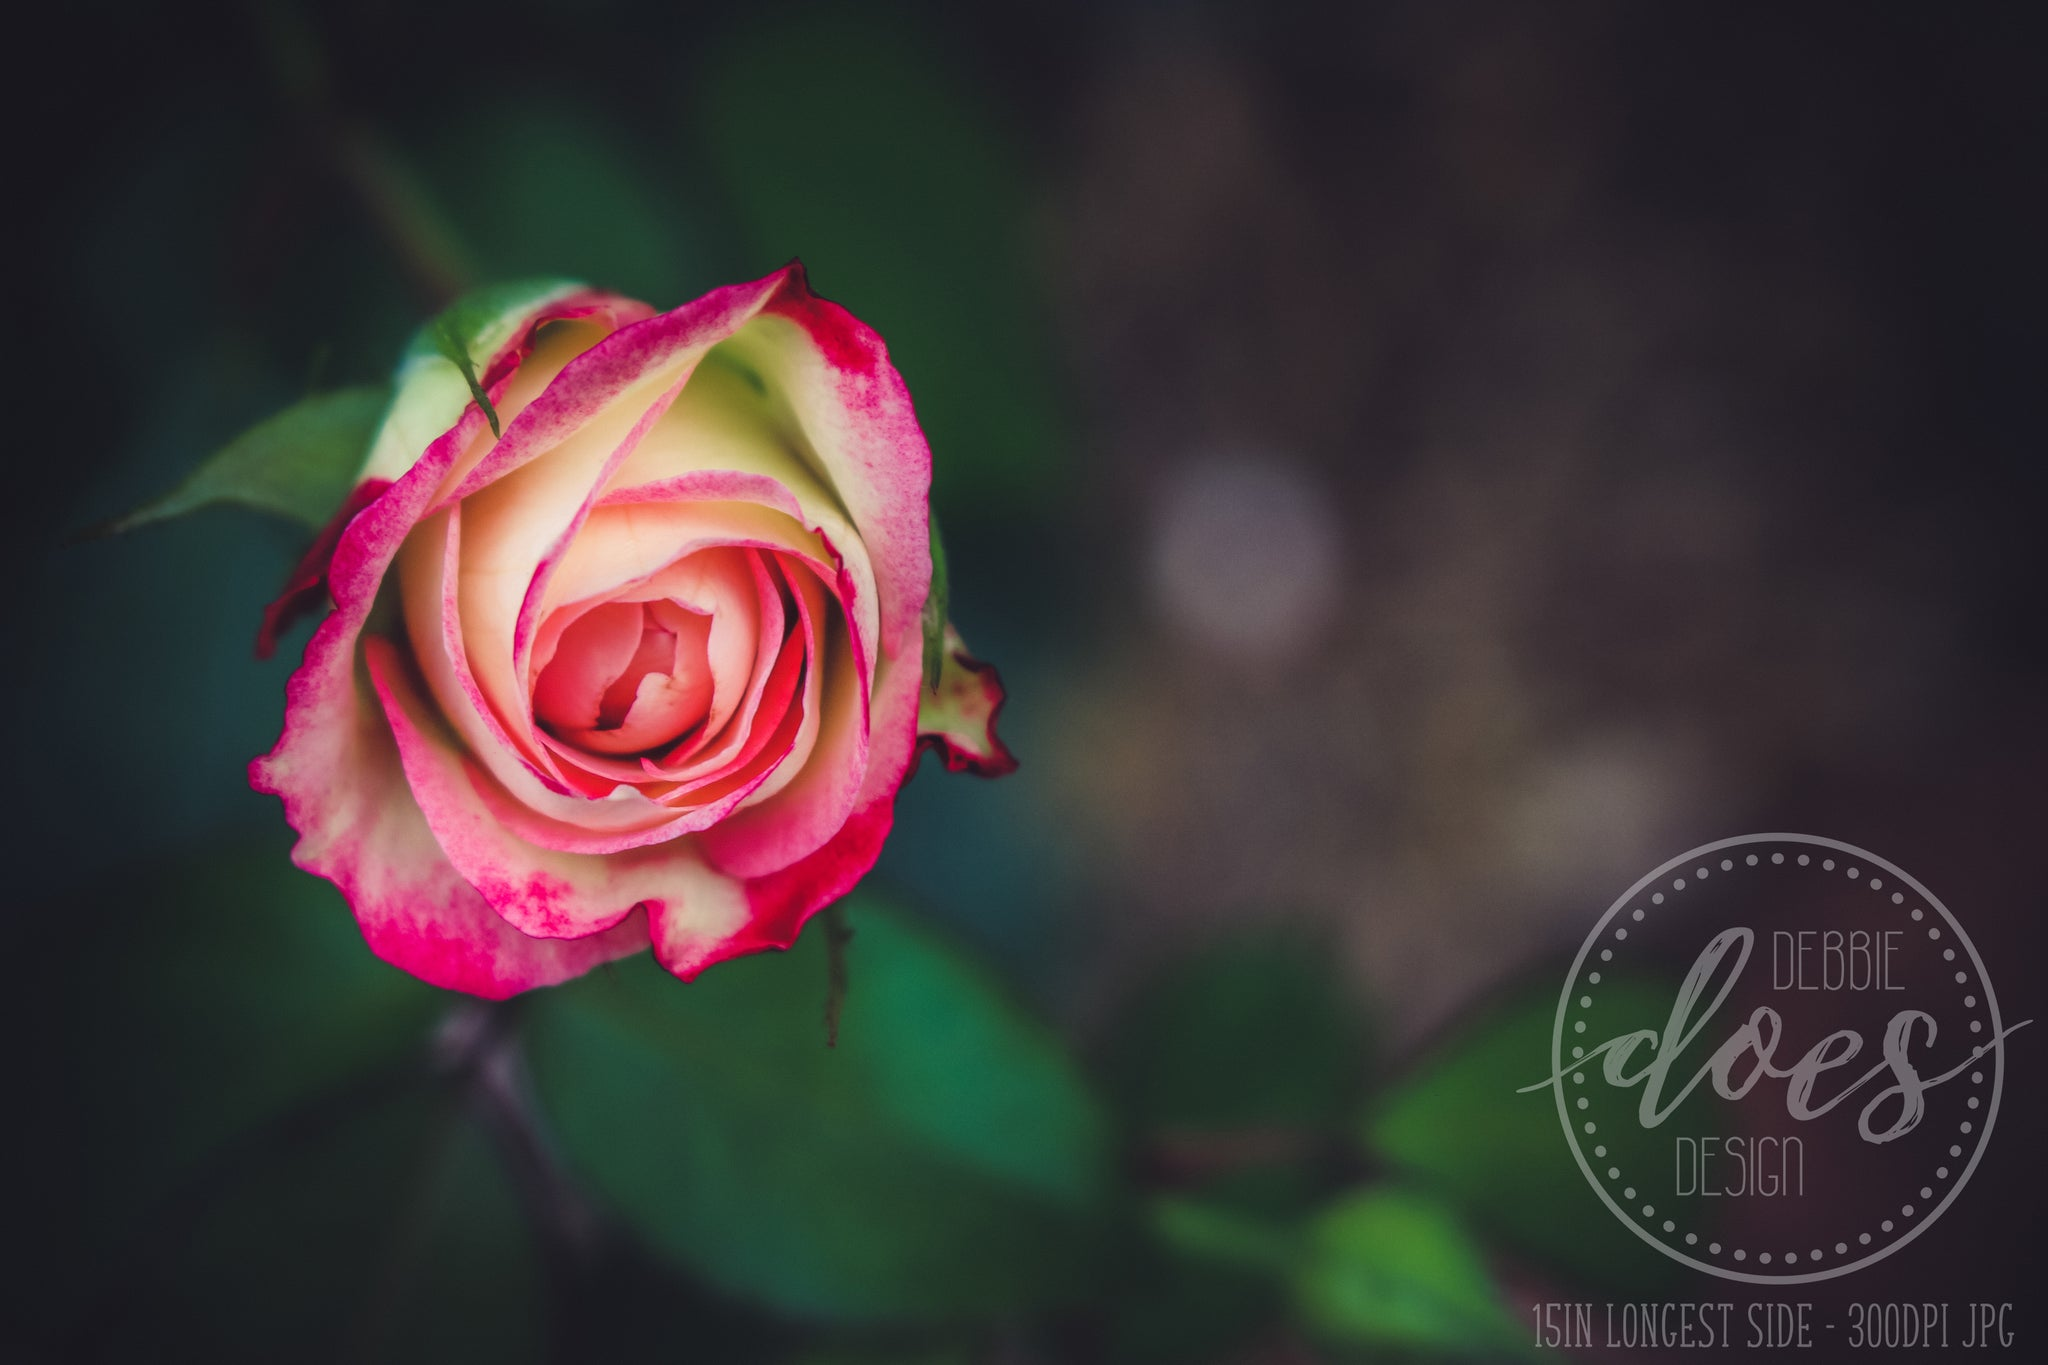 Rose Above - Flower - High Res Digital Photograph